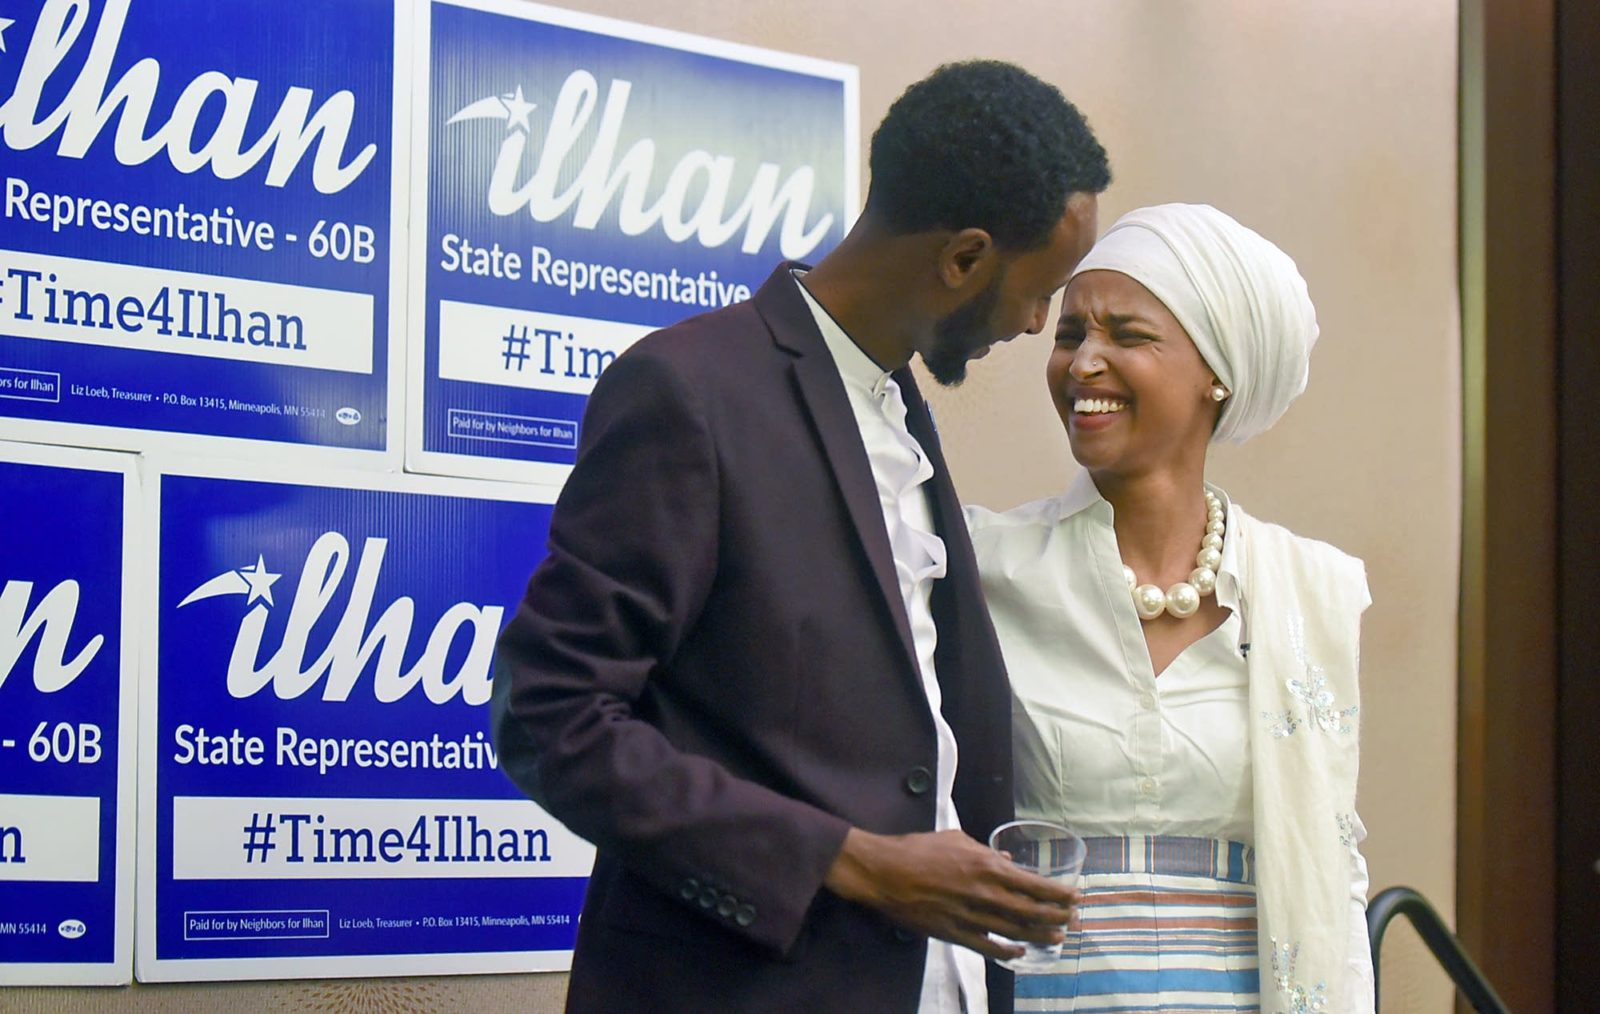 ilhan omar   u0026quot unethical and unbecoming u0026quot